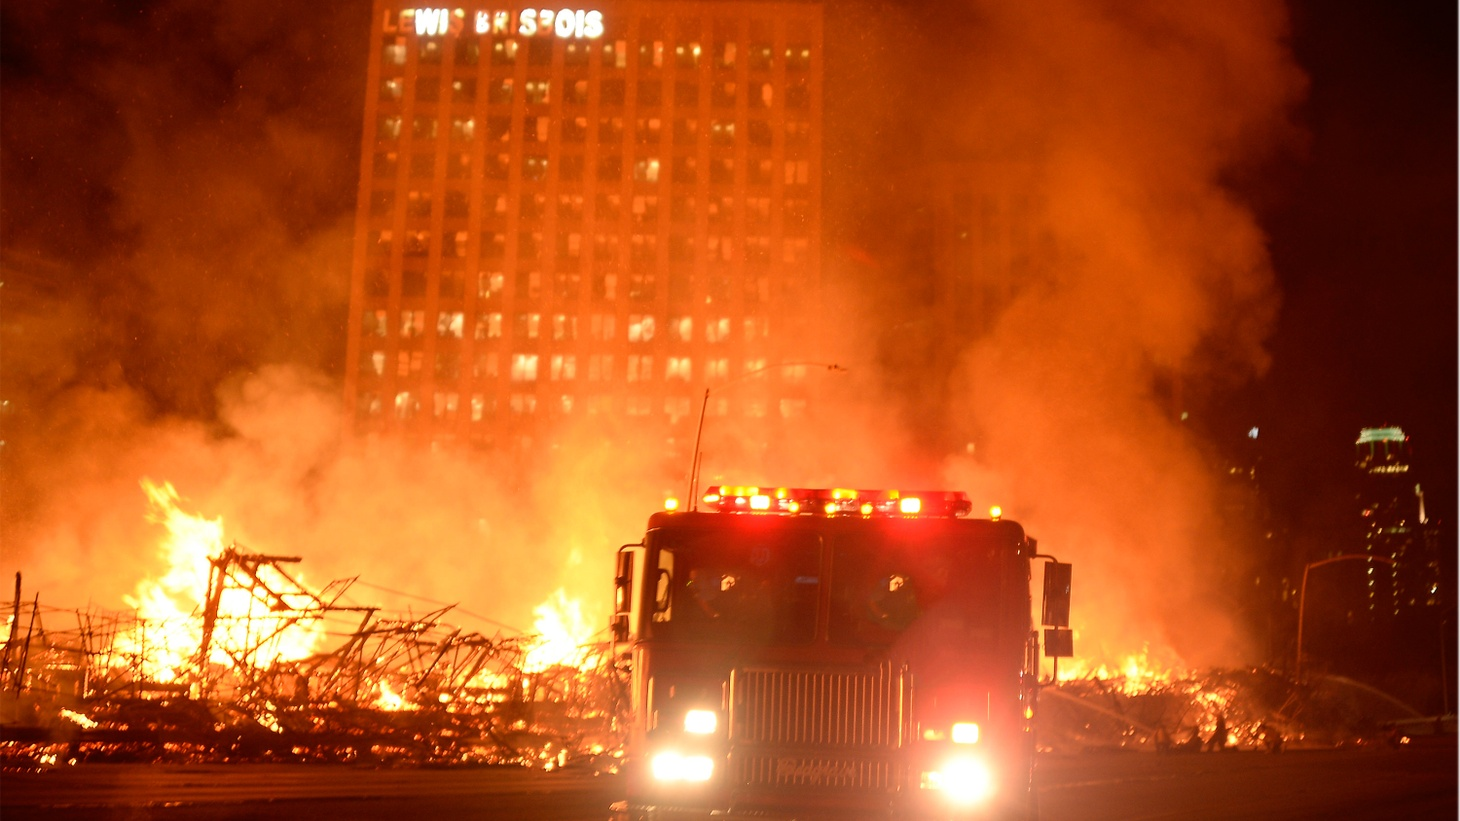 We look at the controversial history of an under-construction apartment complex in downtown L.A. that burned in a huge fire early this morning. Also, what do we know about the last episode ever of Sons of Anarchy?